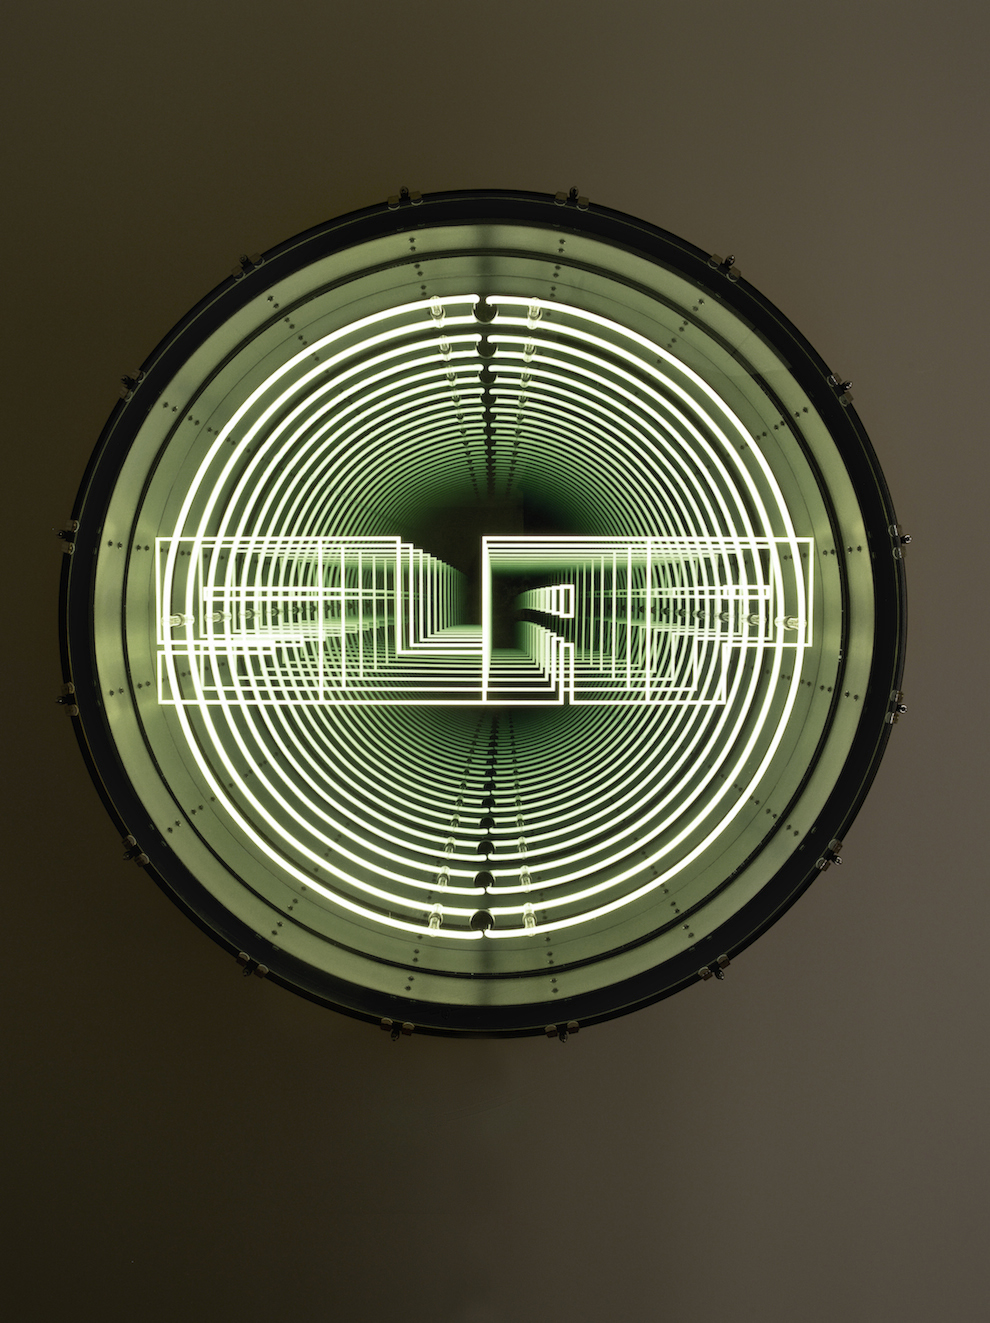 Slap, 2017  Drum, neon, LED lights, plywood, metal, mirror, one-way mirror and electric energy  16 . x 49 . in.  Photo : B.Huet-Tutti  Courtesy Galerie Daniel Templon, Paris and Bruxelles.